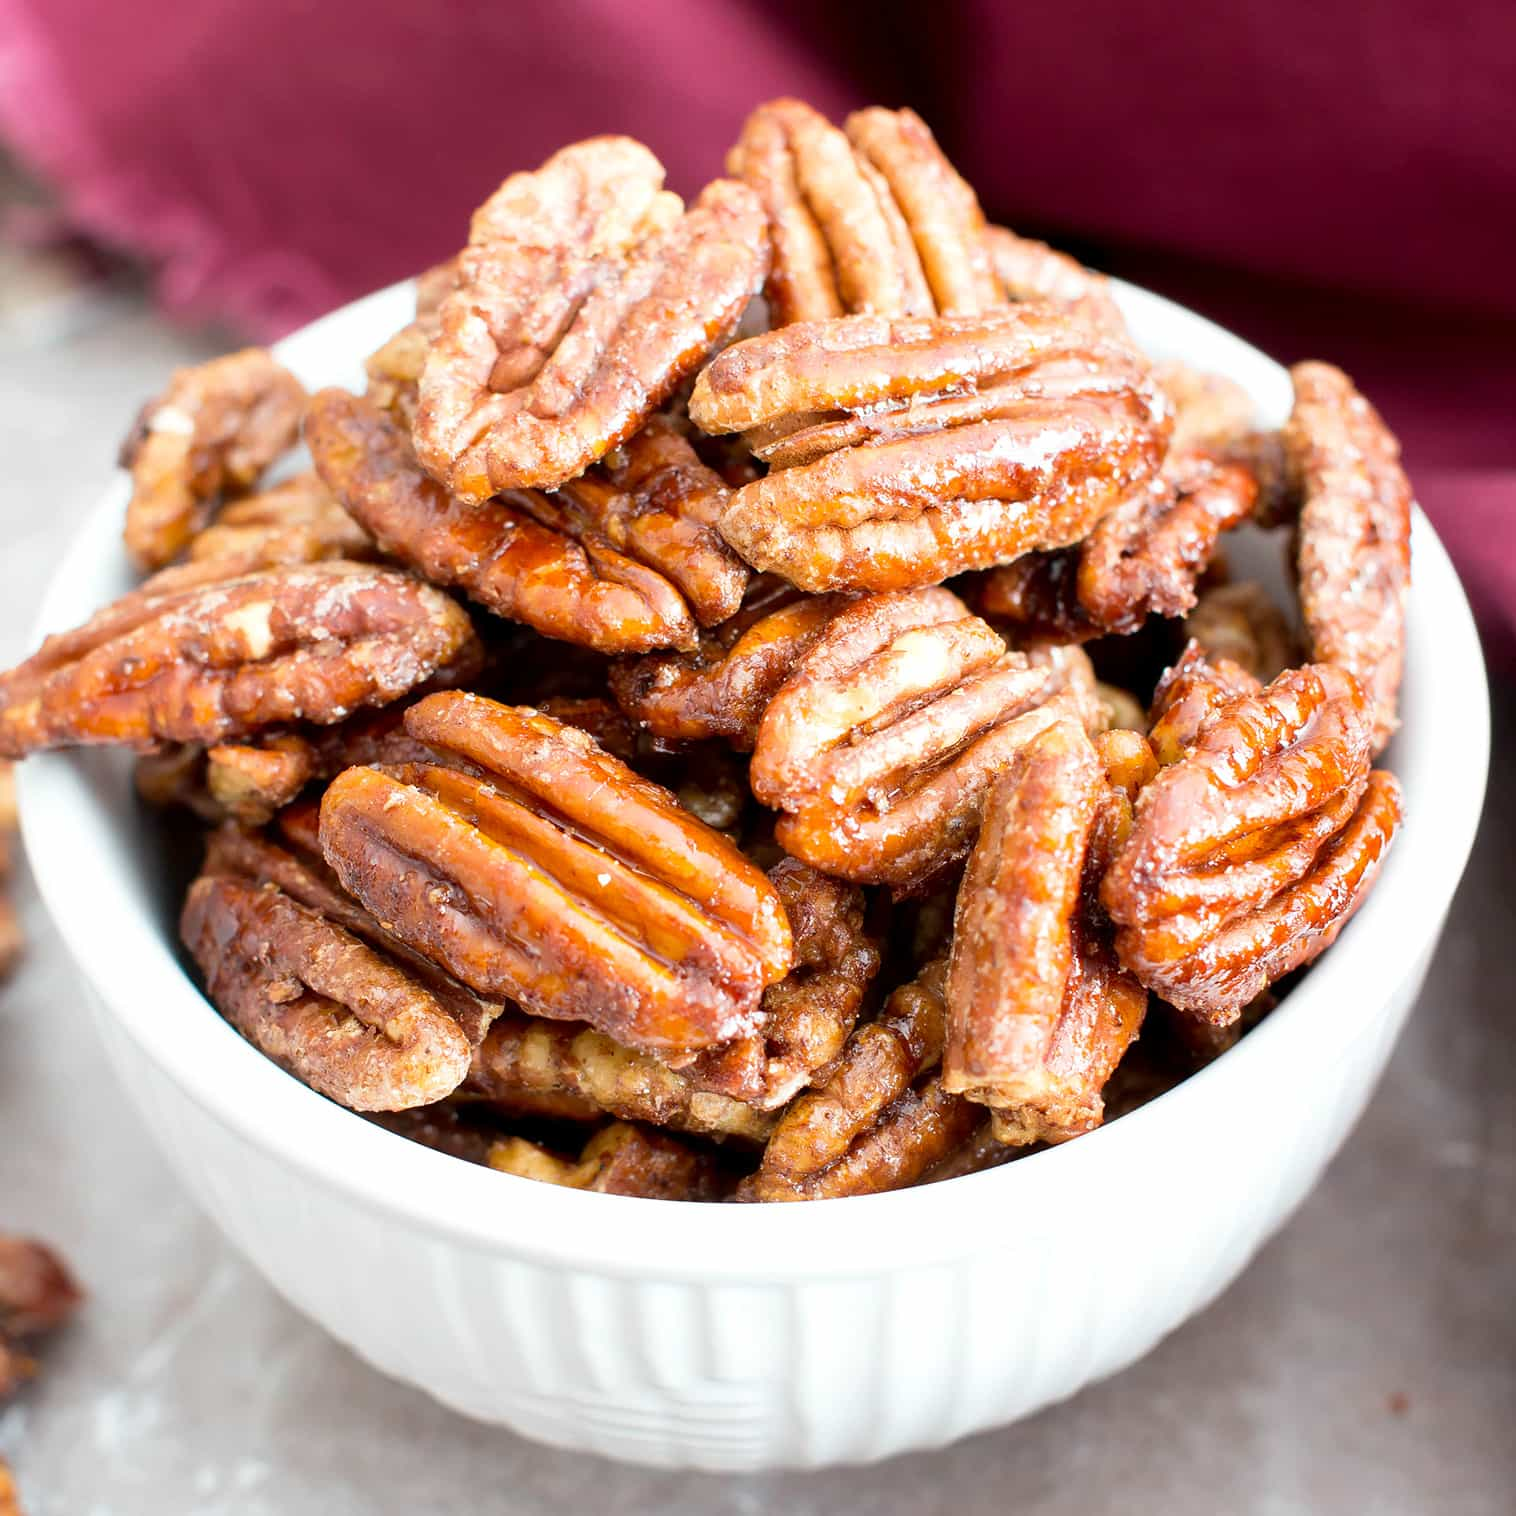 Vegan Candied Pecans: learn how to make candied pecans with just 4 healthy ingredients! Prep time is just 5 mins for deliciously glazed candied pecans in this lower sugar recipe! #Pecans #Healthy #Vegan #Fall | Recipe at BeamingBaker.com